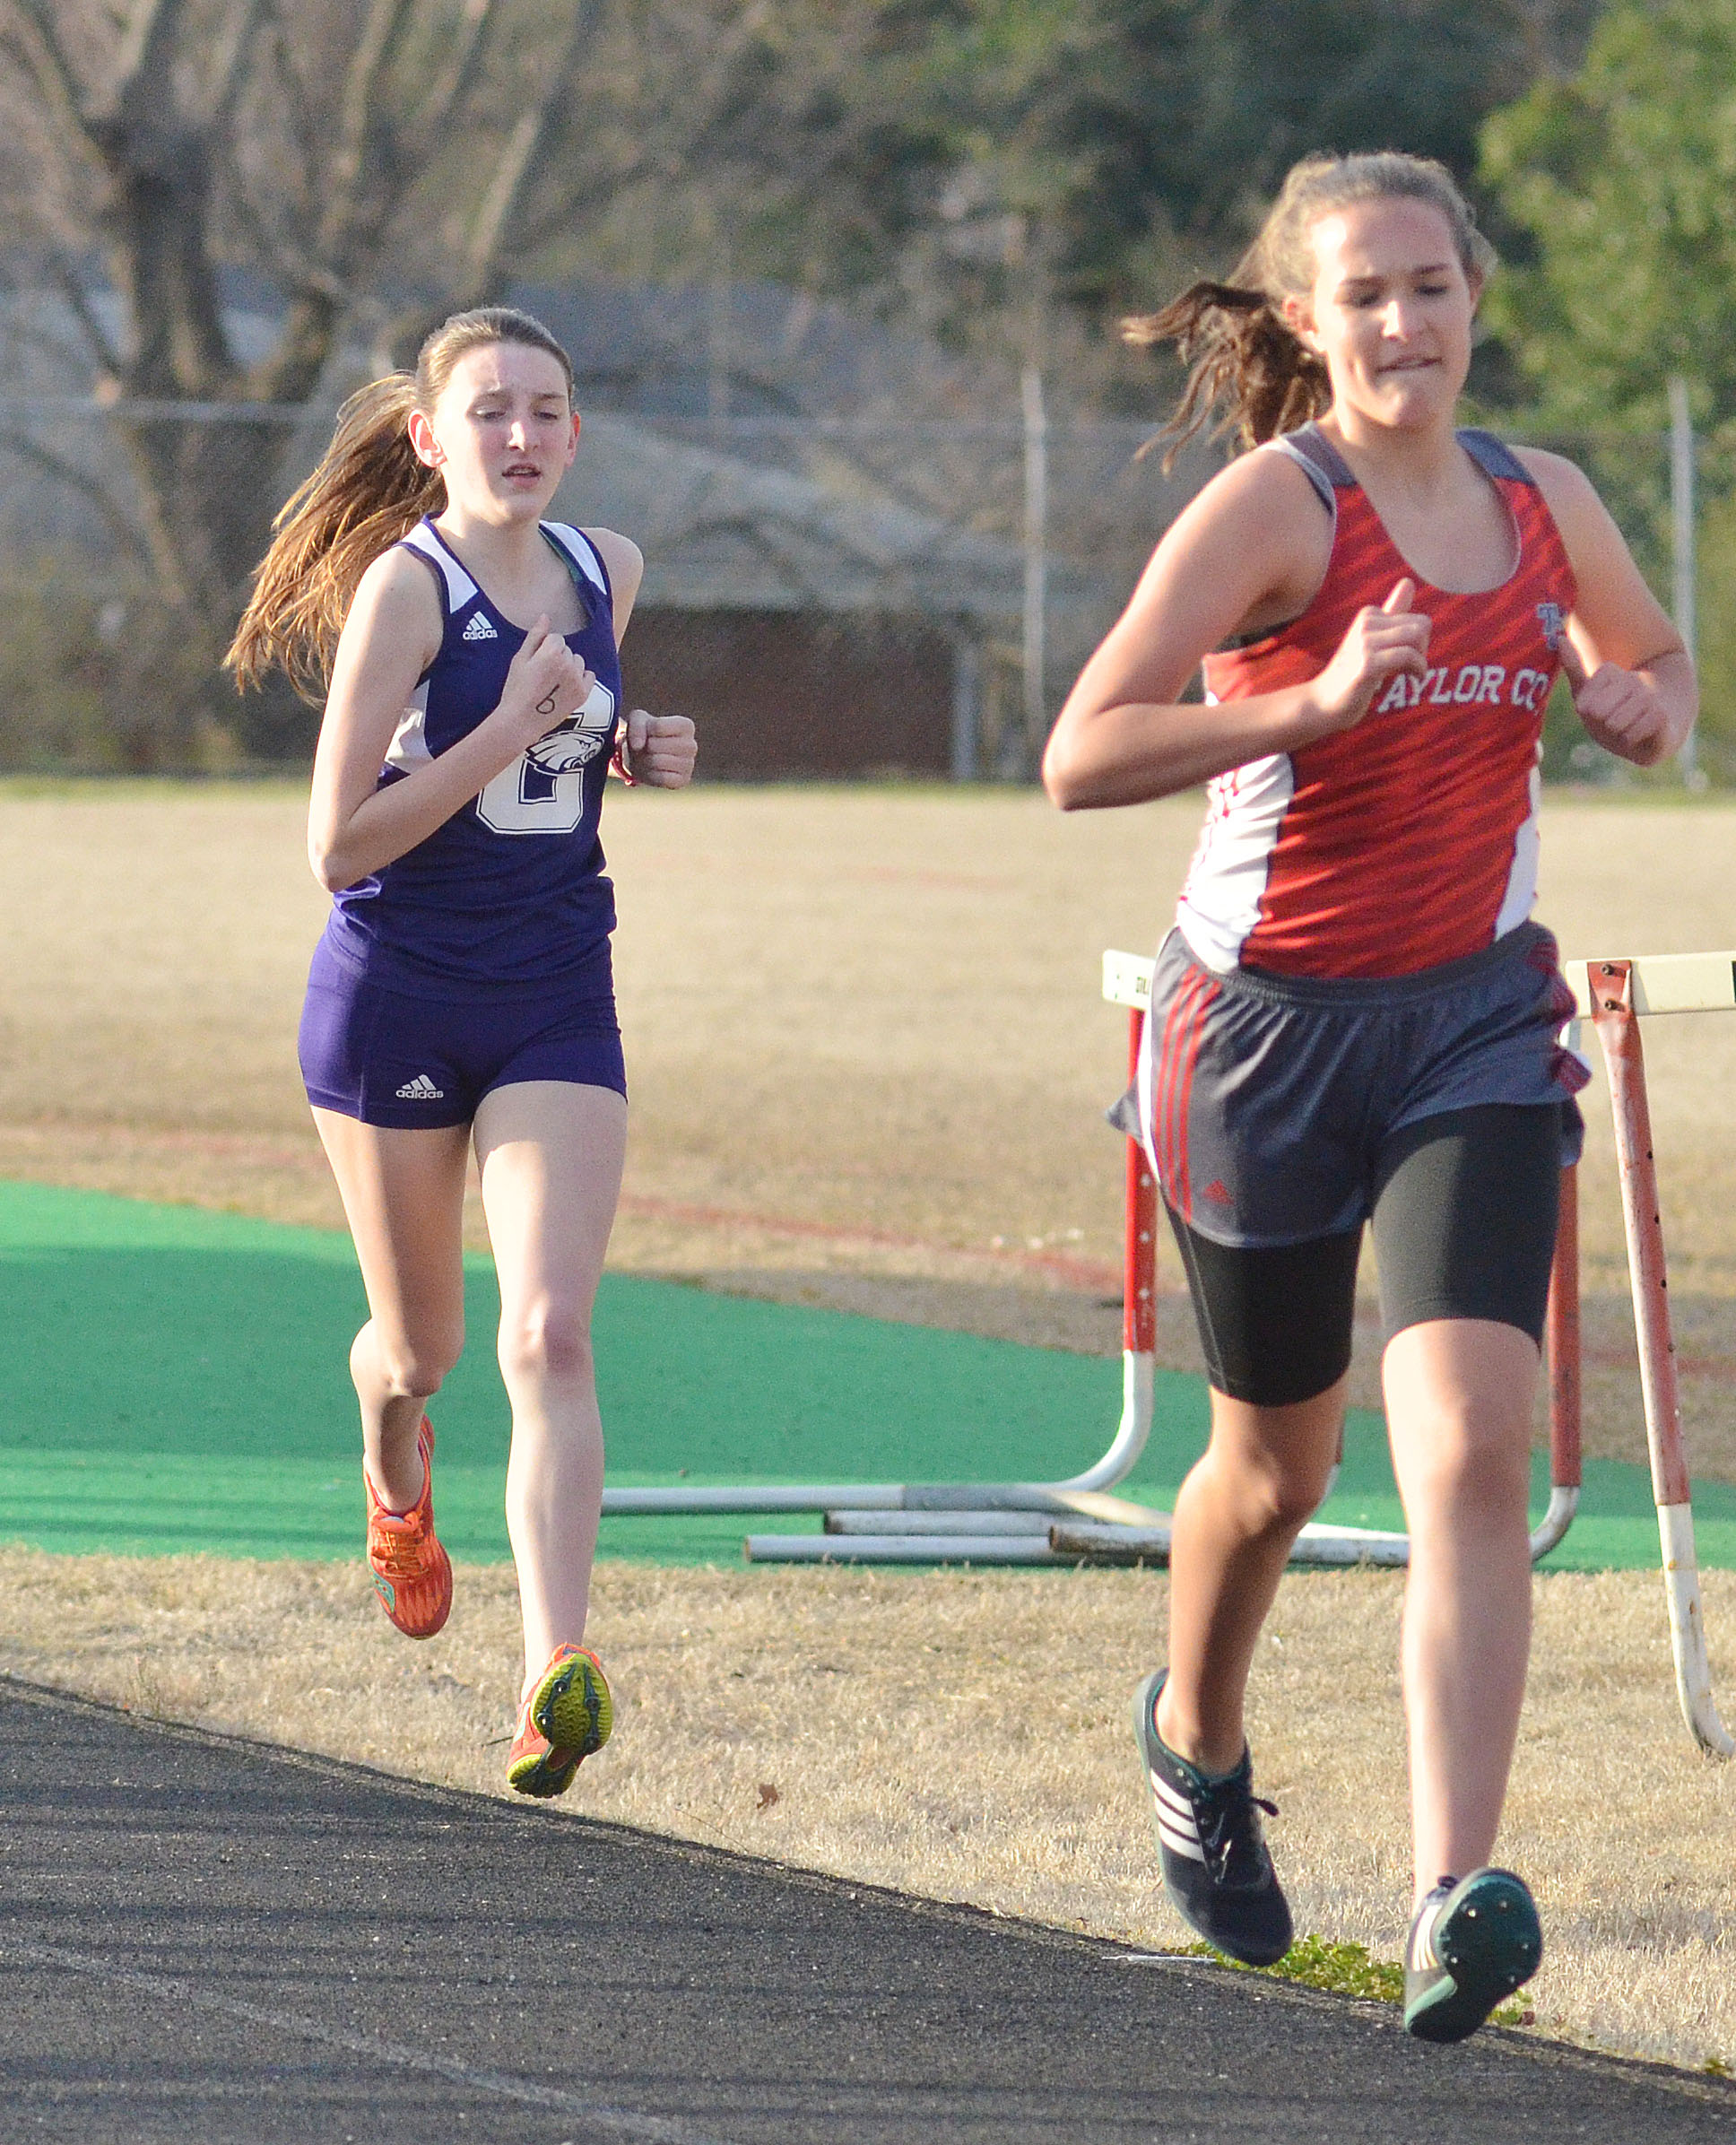 CHS freshman Zoe McAninch, at left, runs.